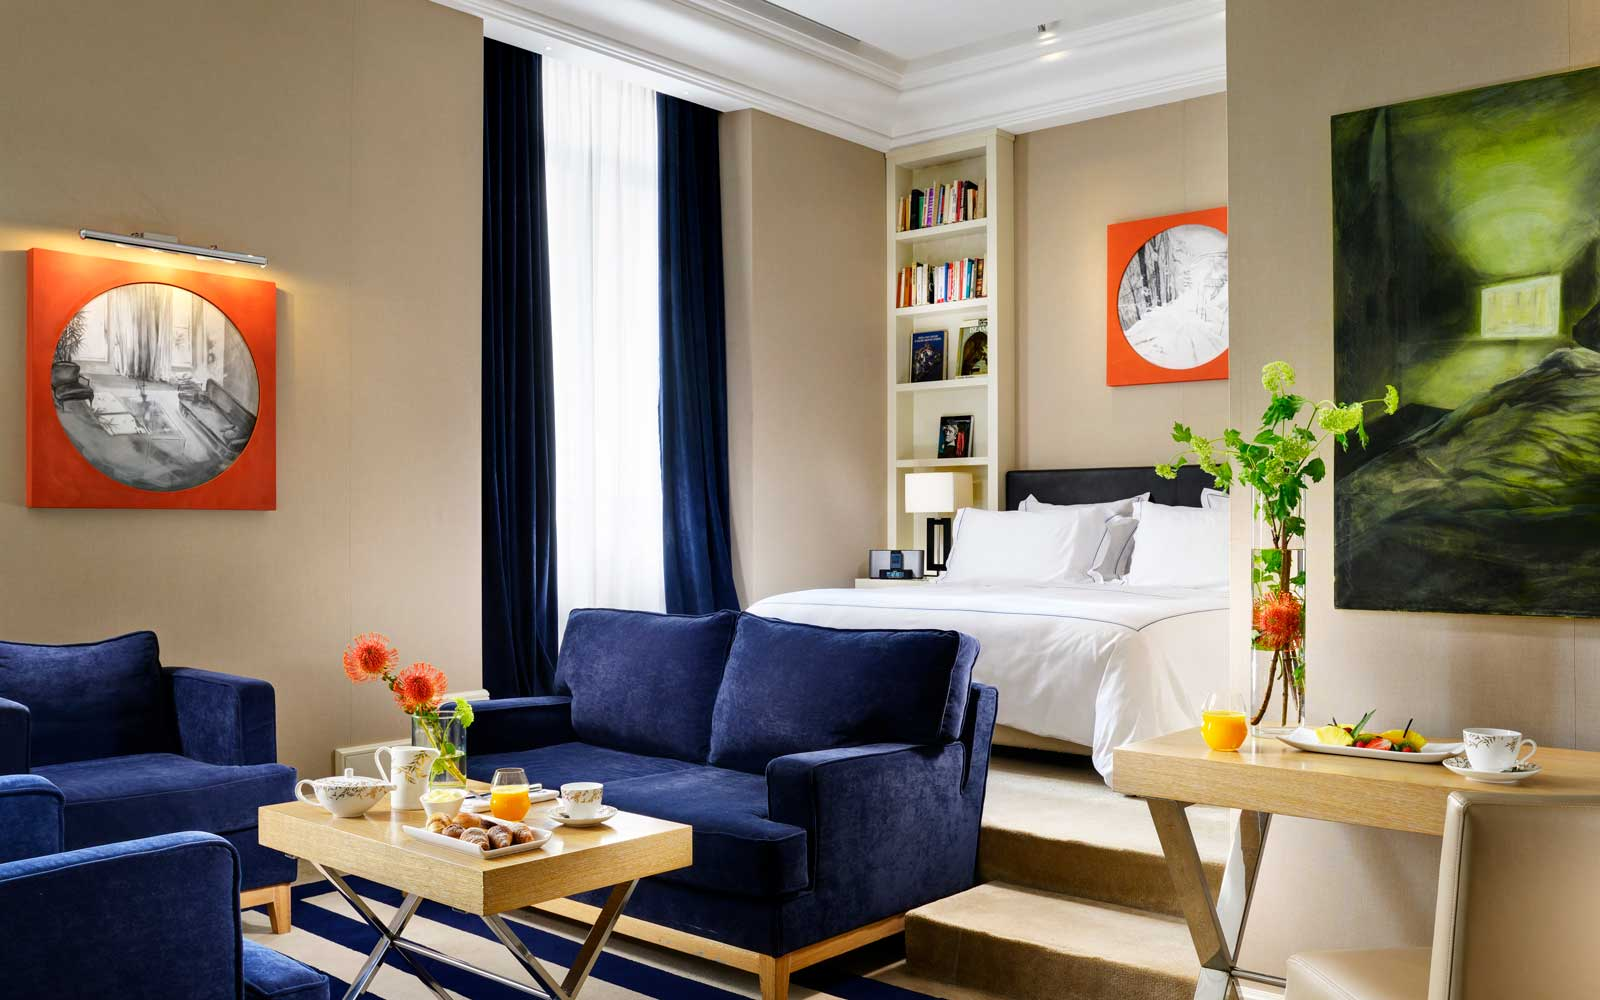 Get 30% off Stays at This Lavish Art-Centered Hotel in Rome